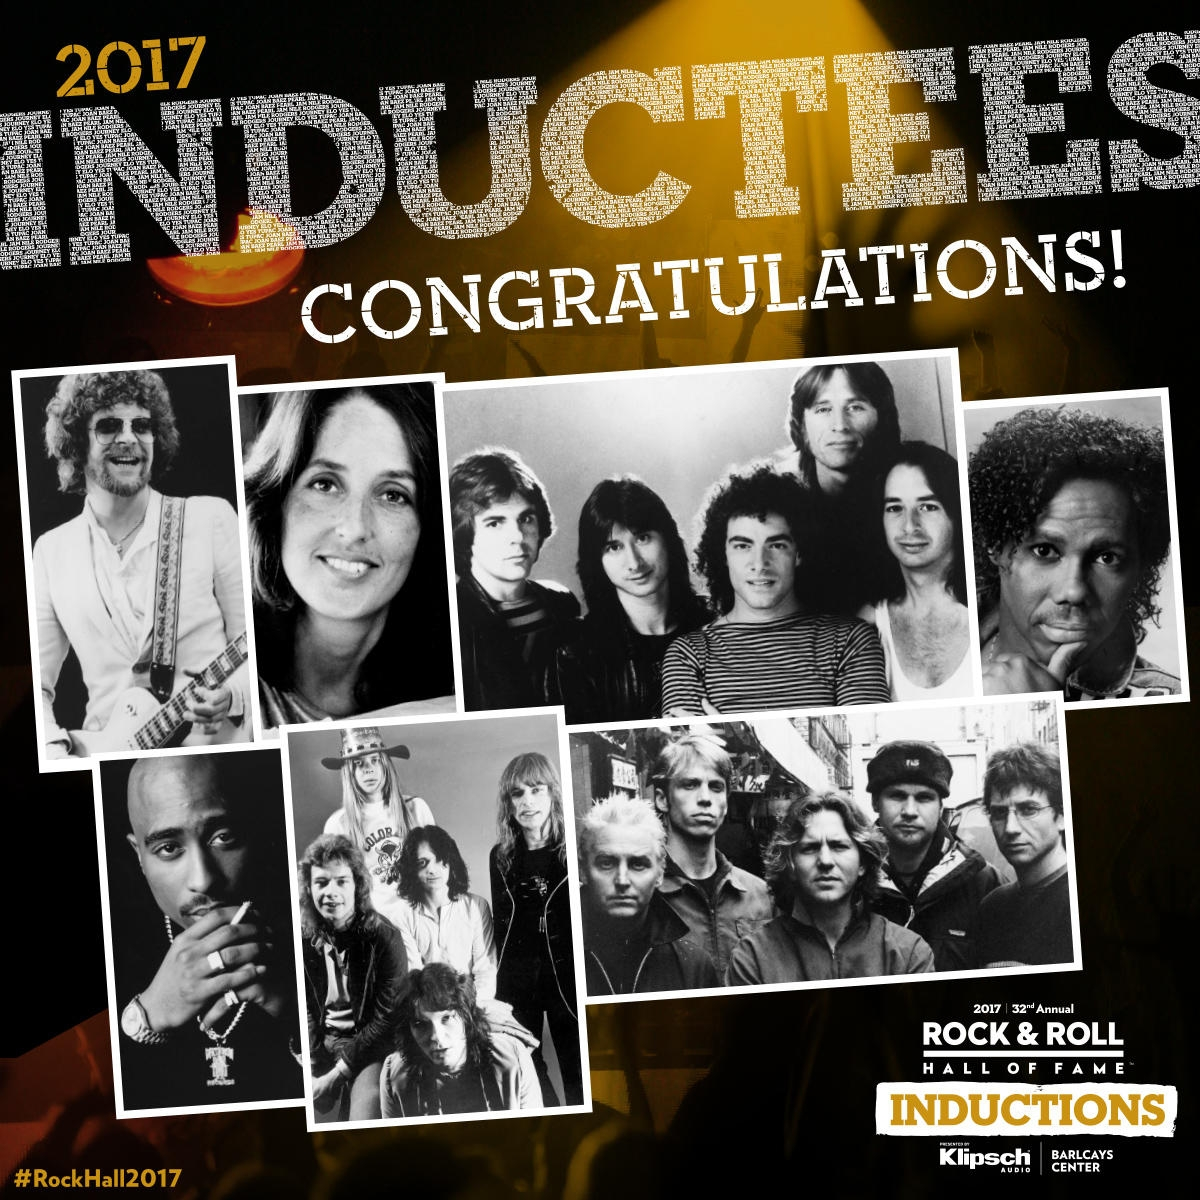 Rush and Neil Young among Rock and Roll Hall of Fame inductors